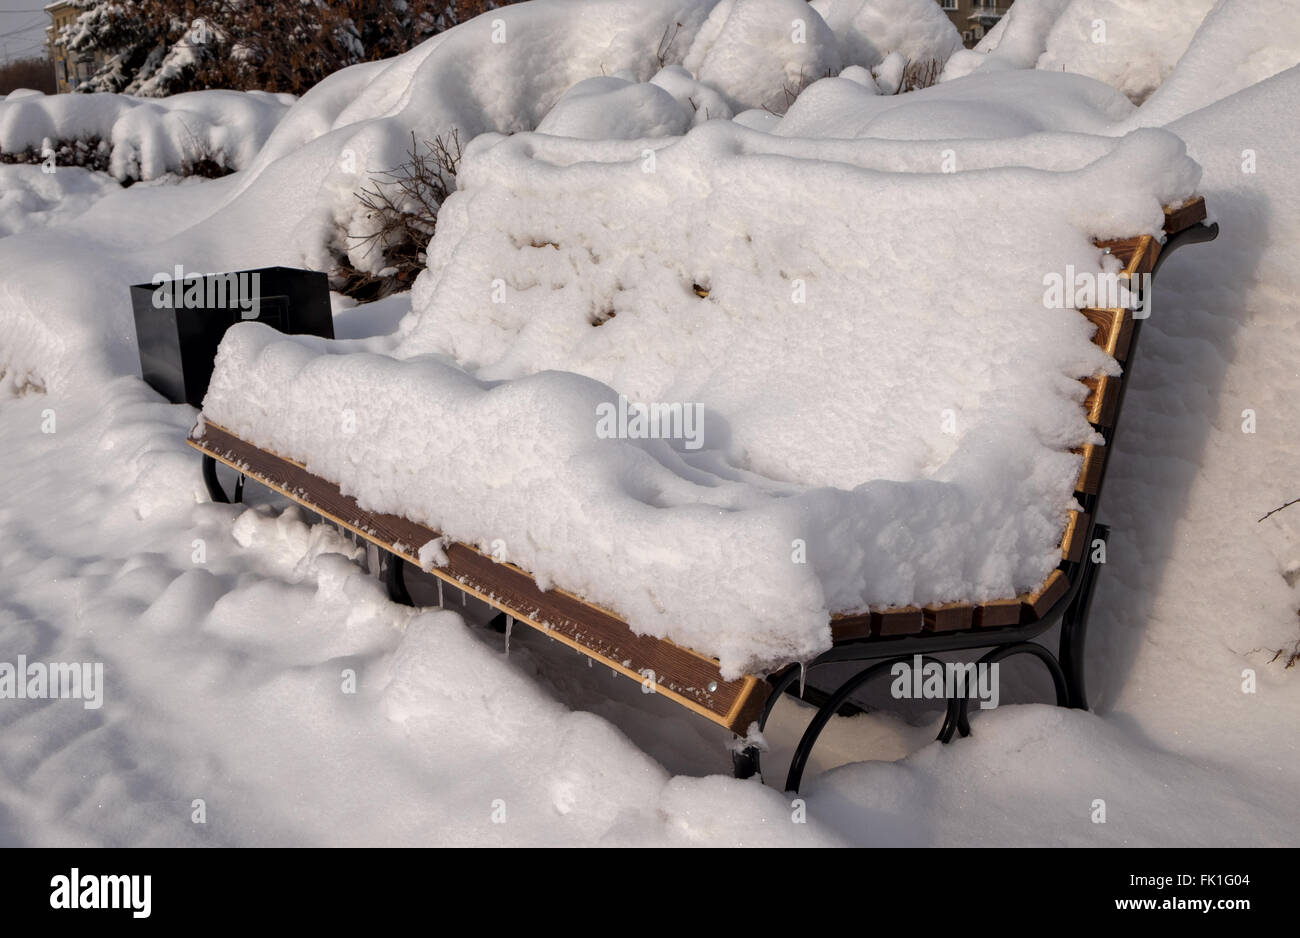 Snowdrift on bench after heavy snowfall - Stock Image